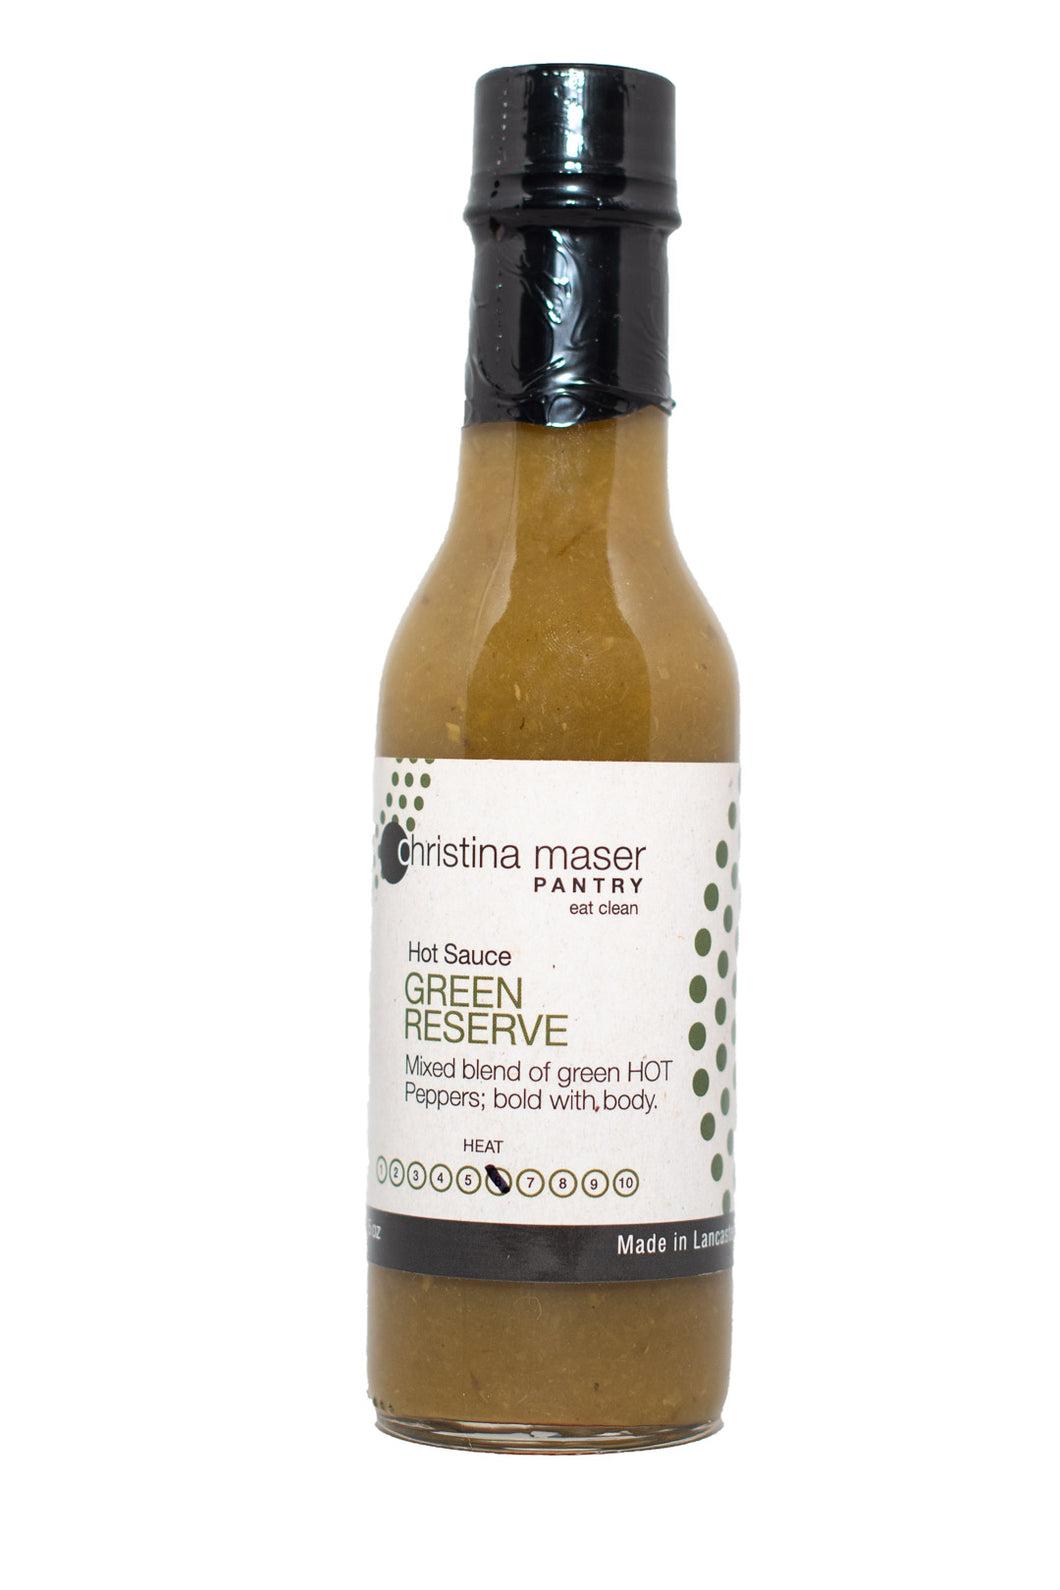 Green Reserve hot sauce in a glass bottle with black lid. Hot sauce is green. Label is off white with dark green accents.